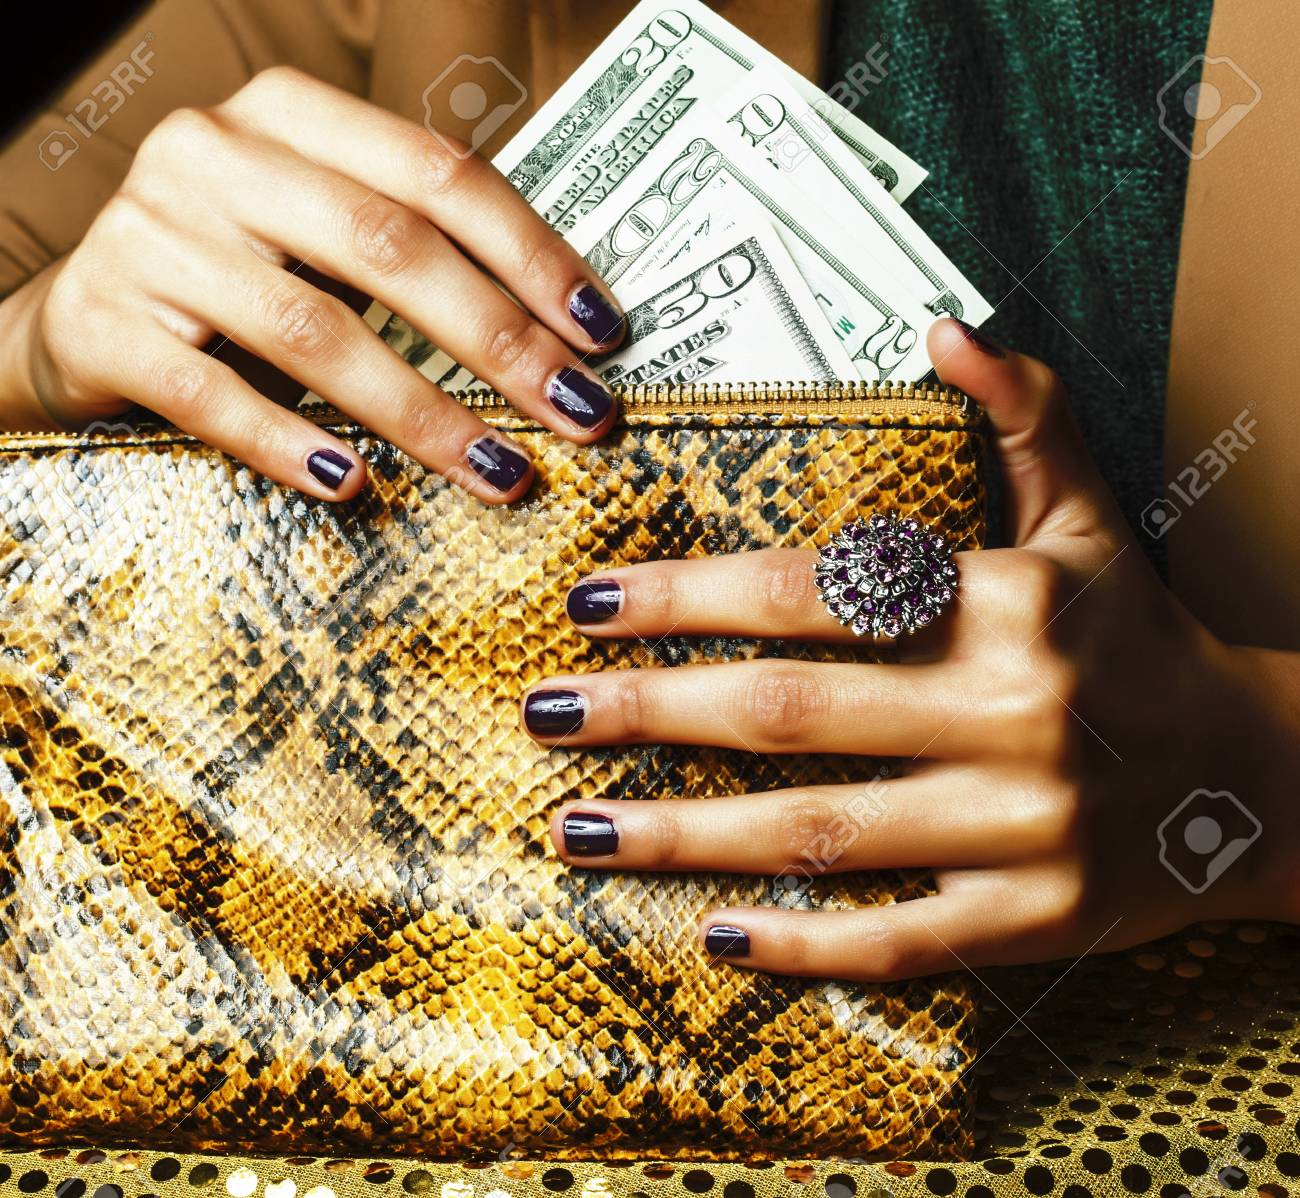 pretty fingers of african american woman holding money close up with purse, luxury jewellery on python clutch, cash for gifts - 121254509